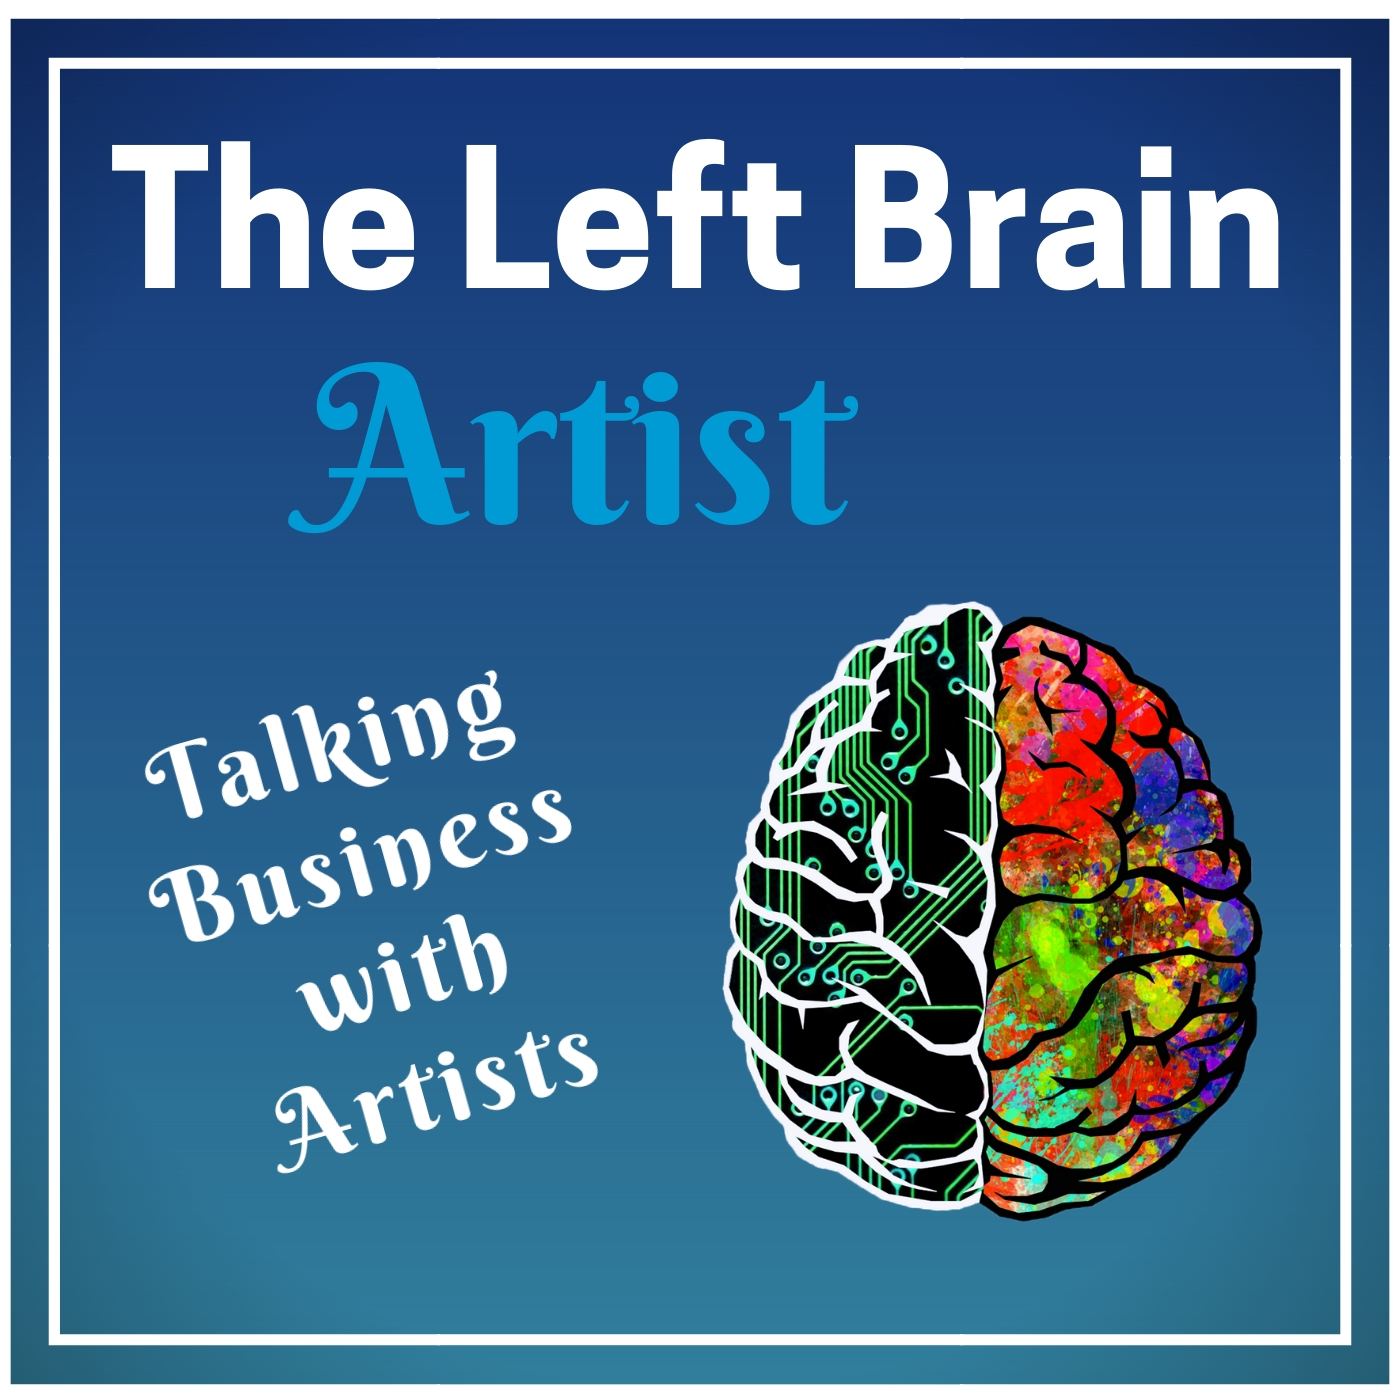 The Left Brain Artist